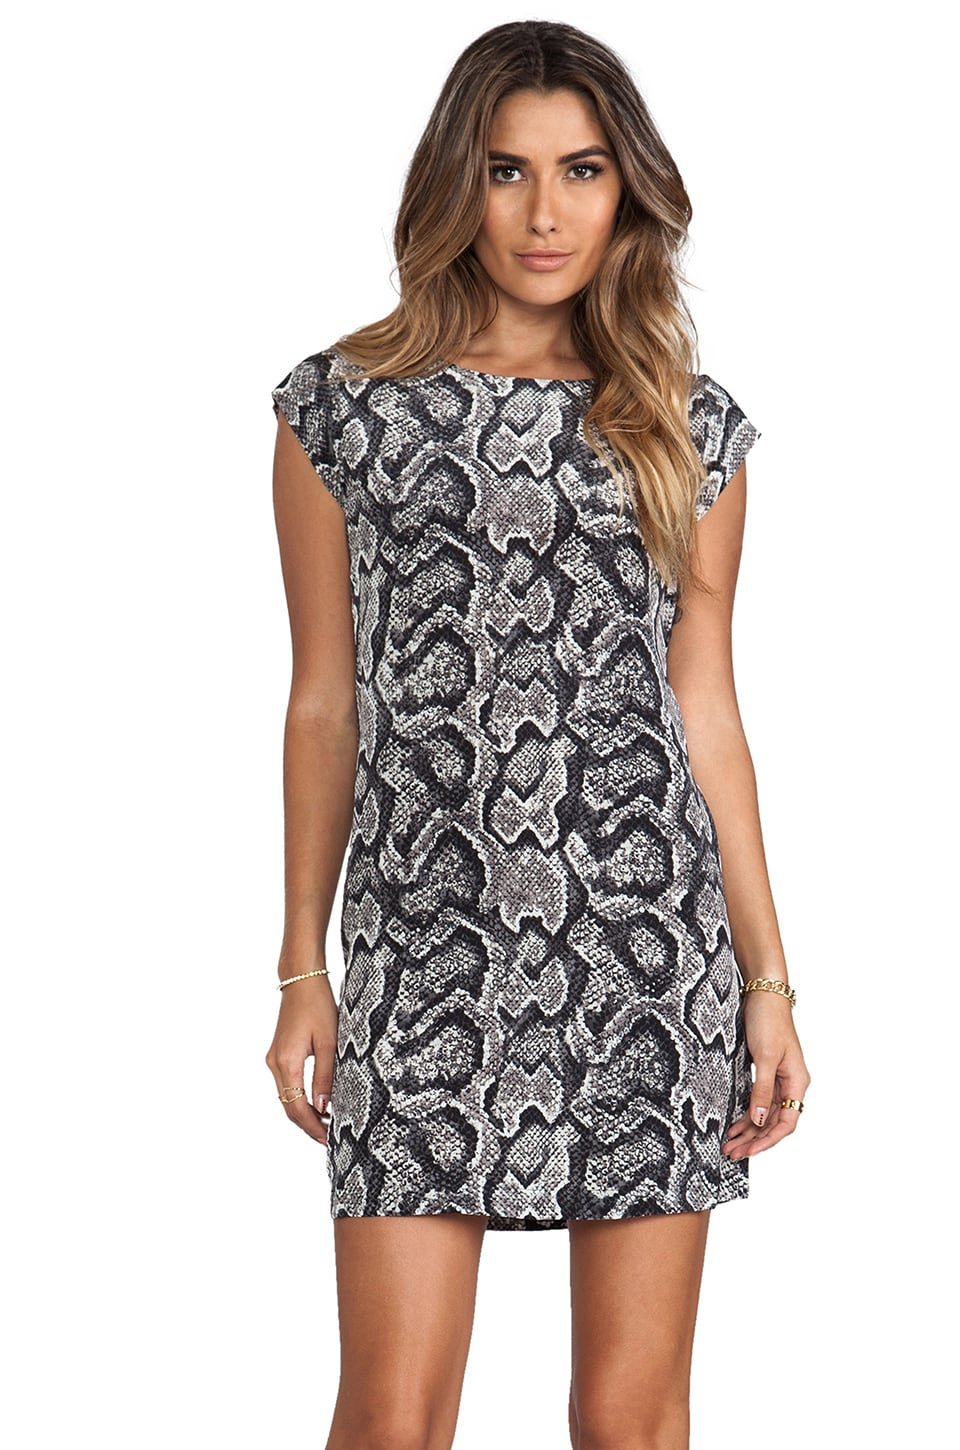 Joie Snake Skin Printed Savory Weaver Dress in Caviar